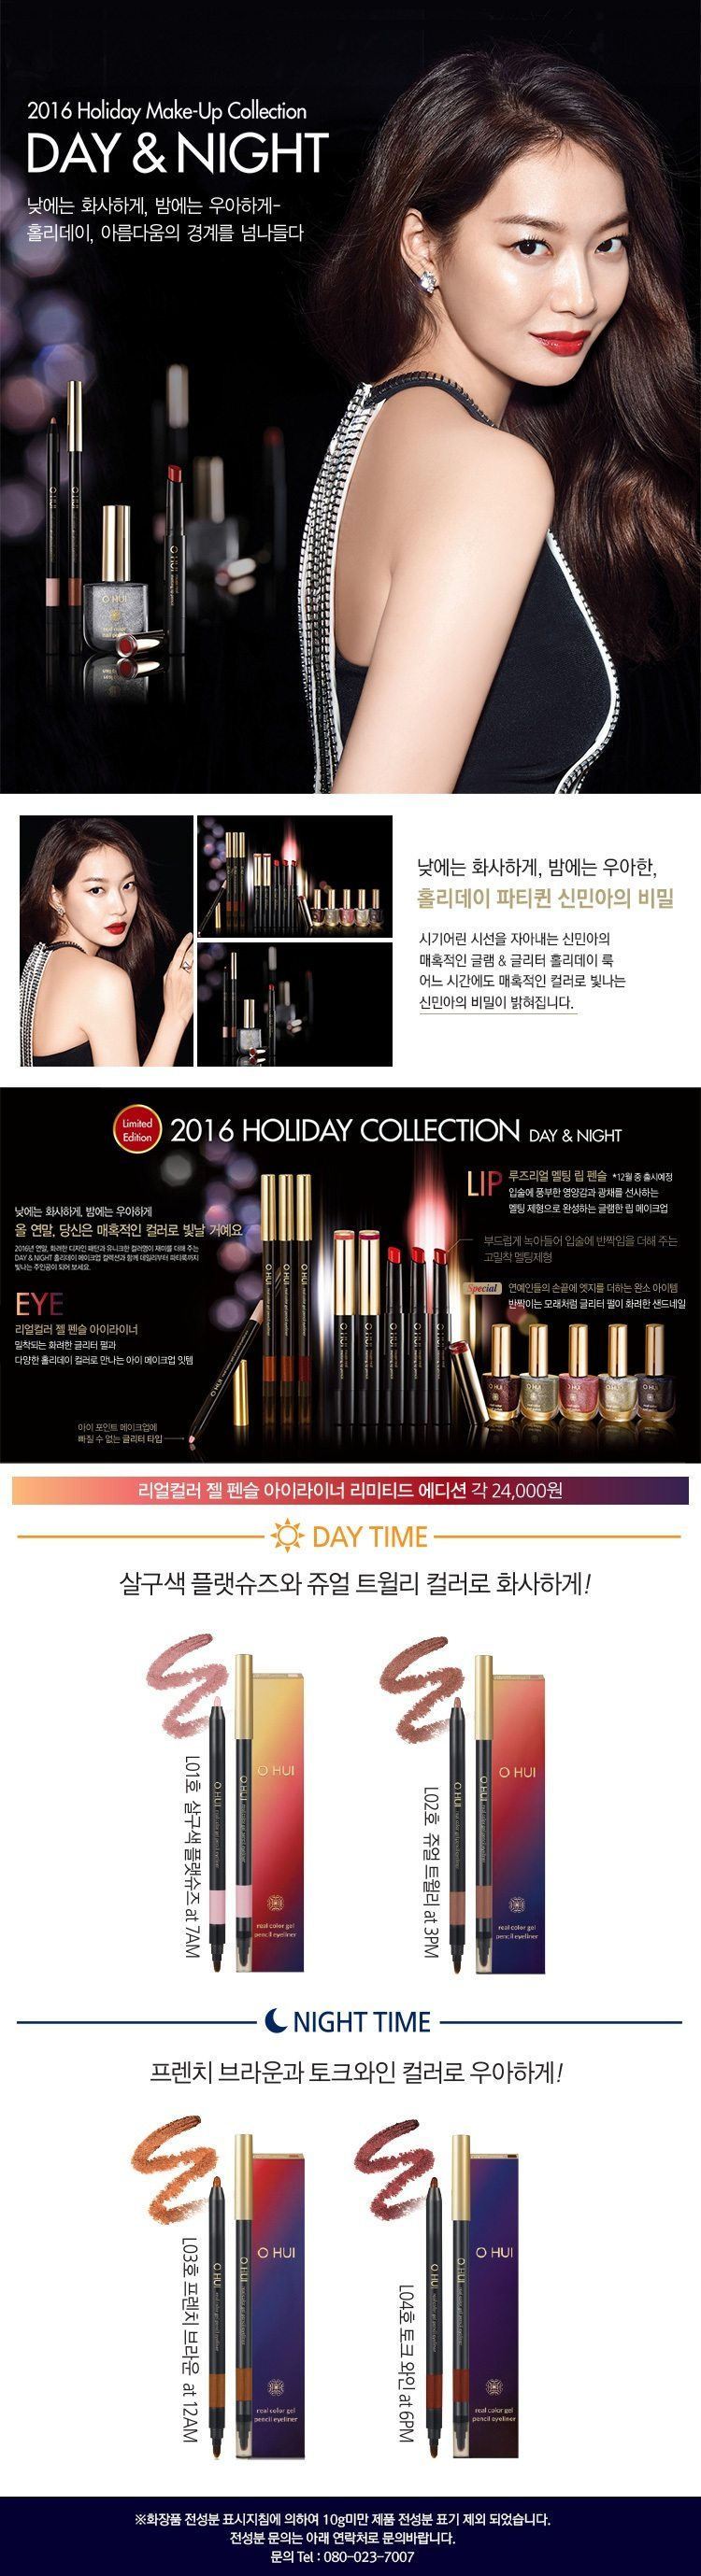 O Hui Real Color Gel Pencil Eyeliner korean cosmetic makeup product online shop malaysia japan taiwan1